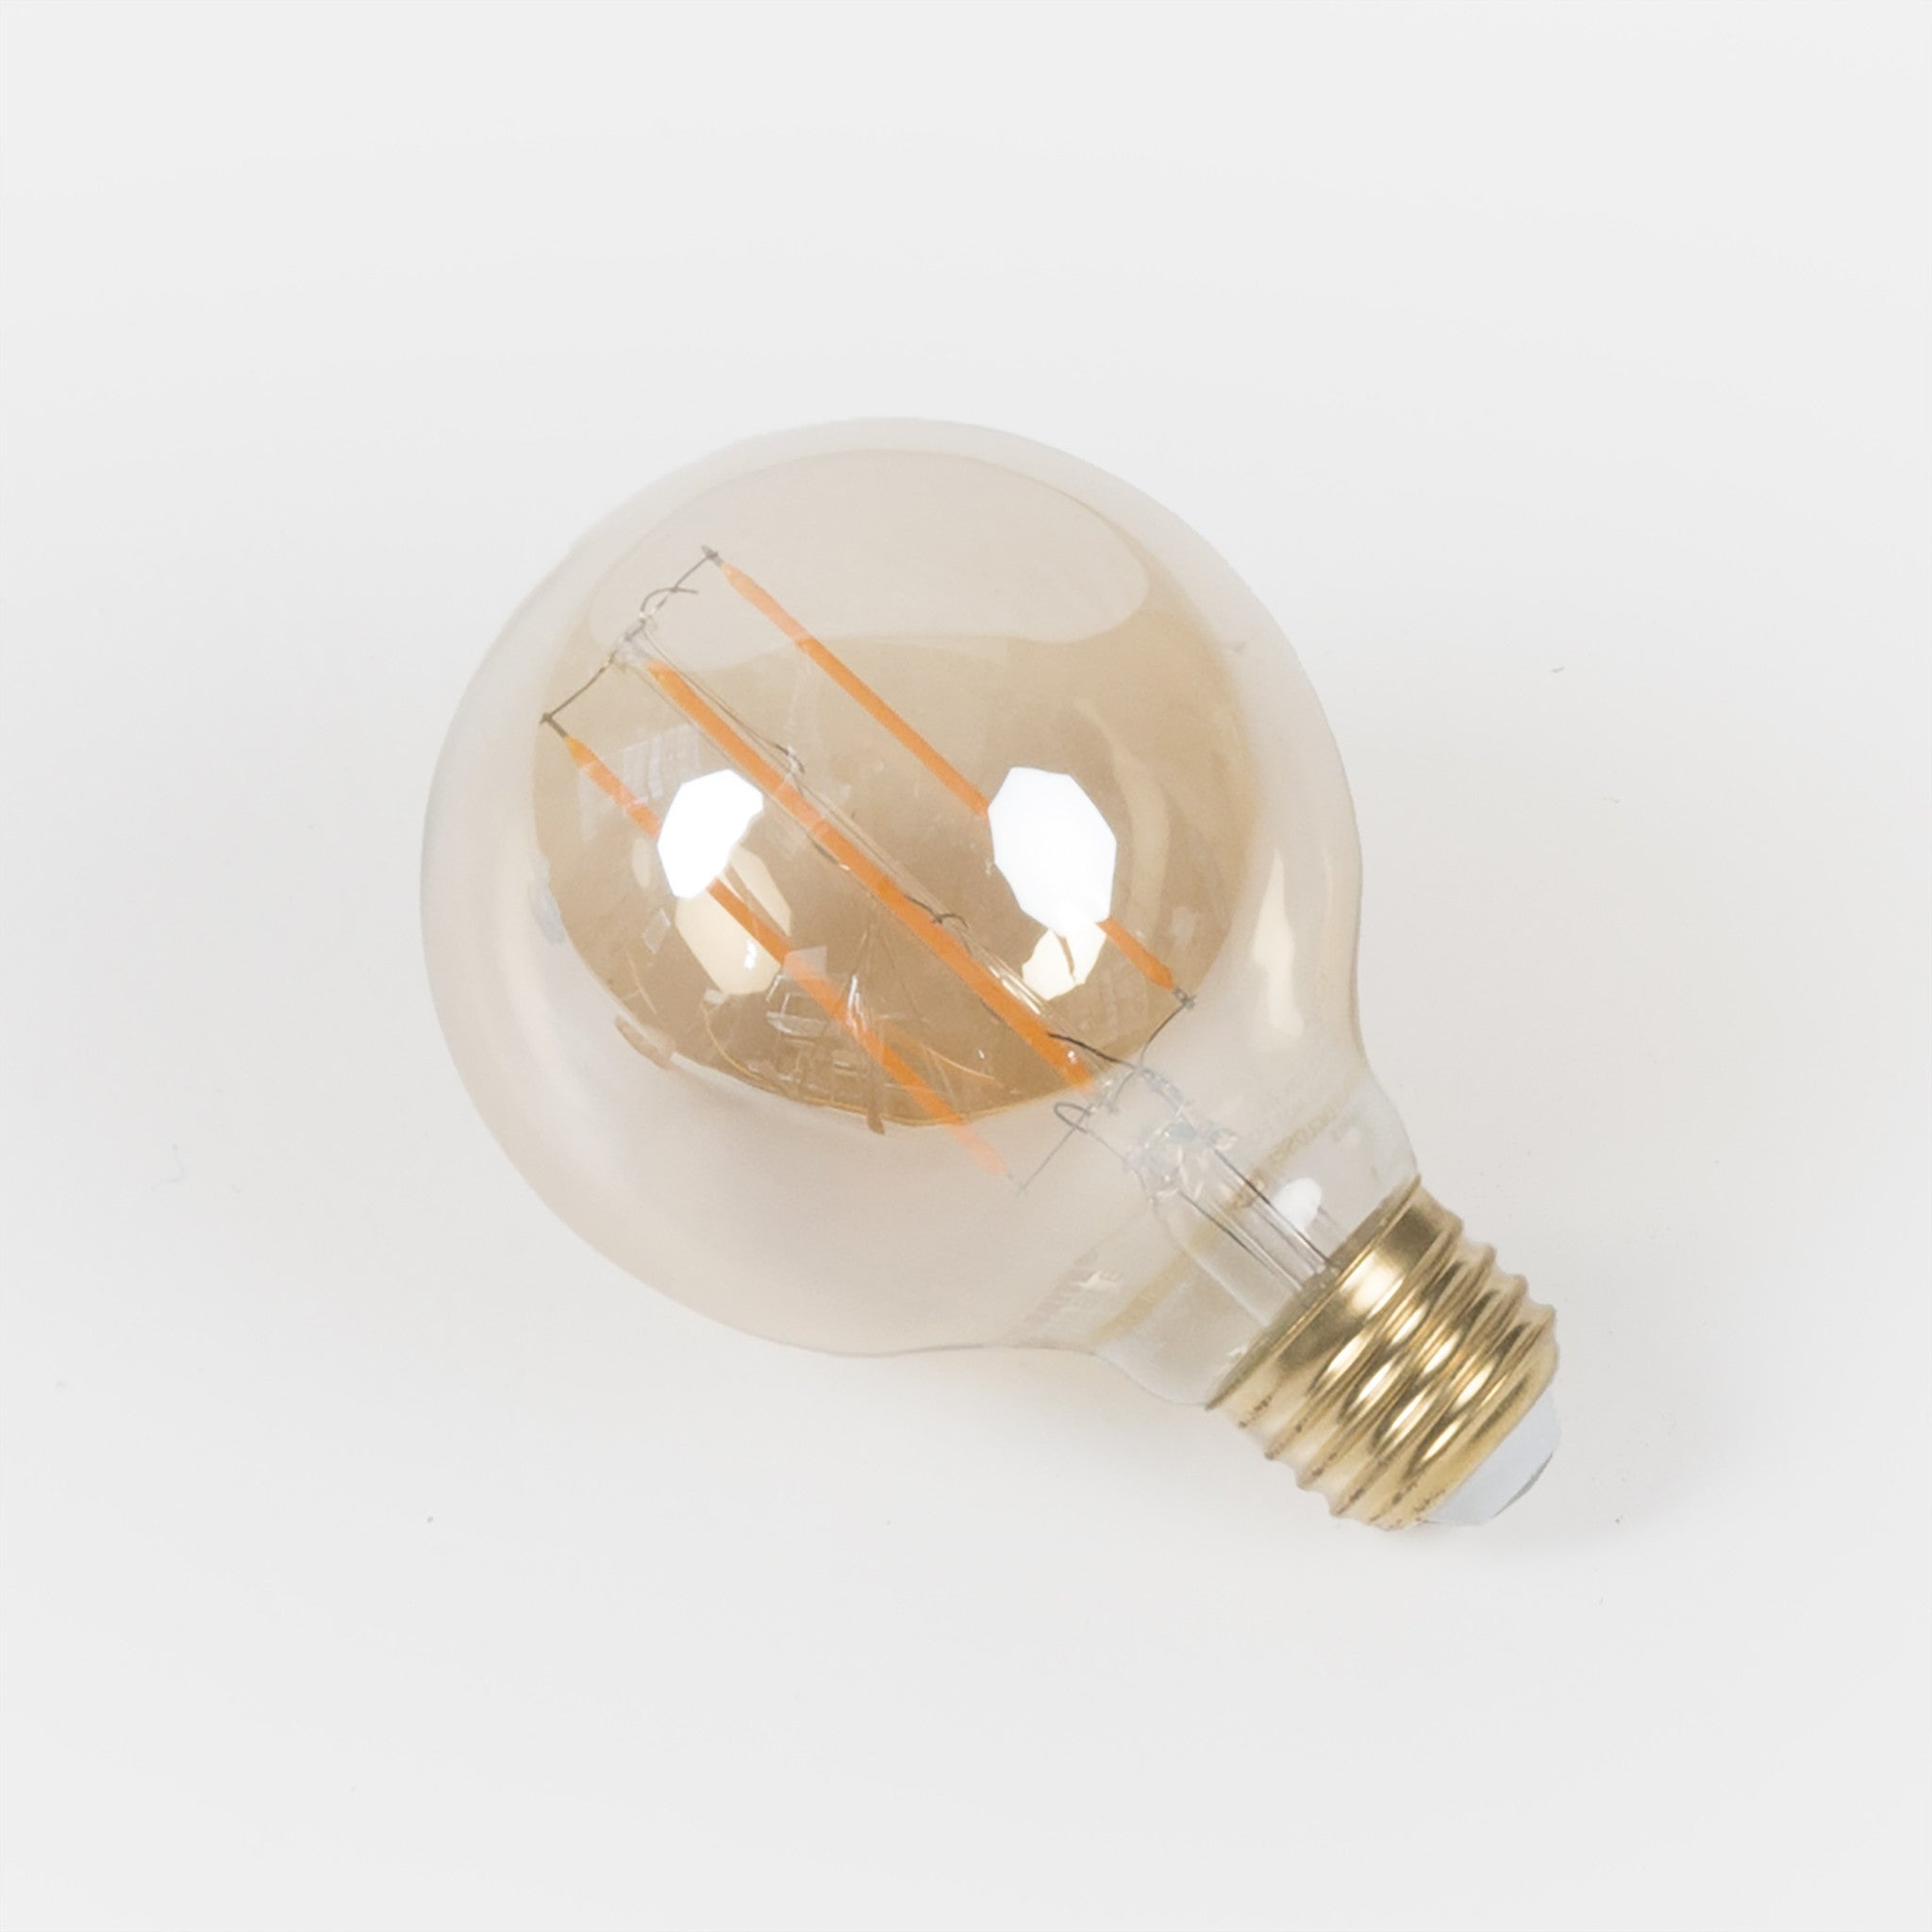 "3.125"" Globe Antique-Style LED bulb with E26 base offered by Studio DUNN for use with the Sorenthia and Flute Collections"